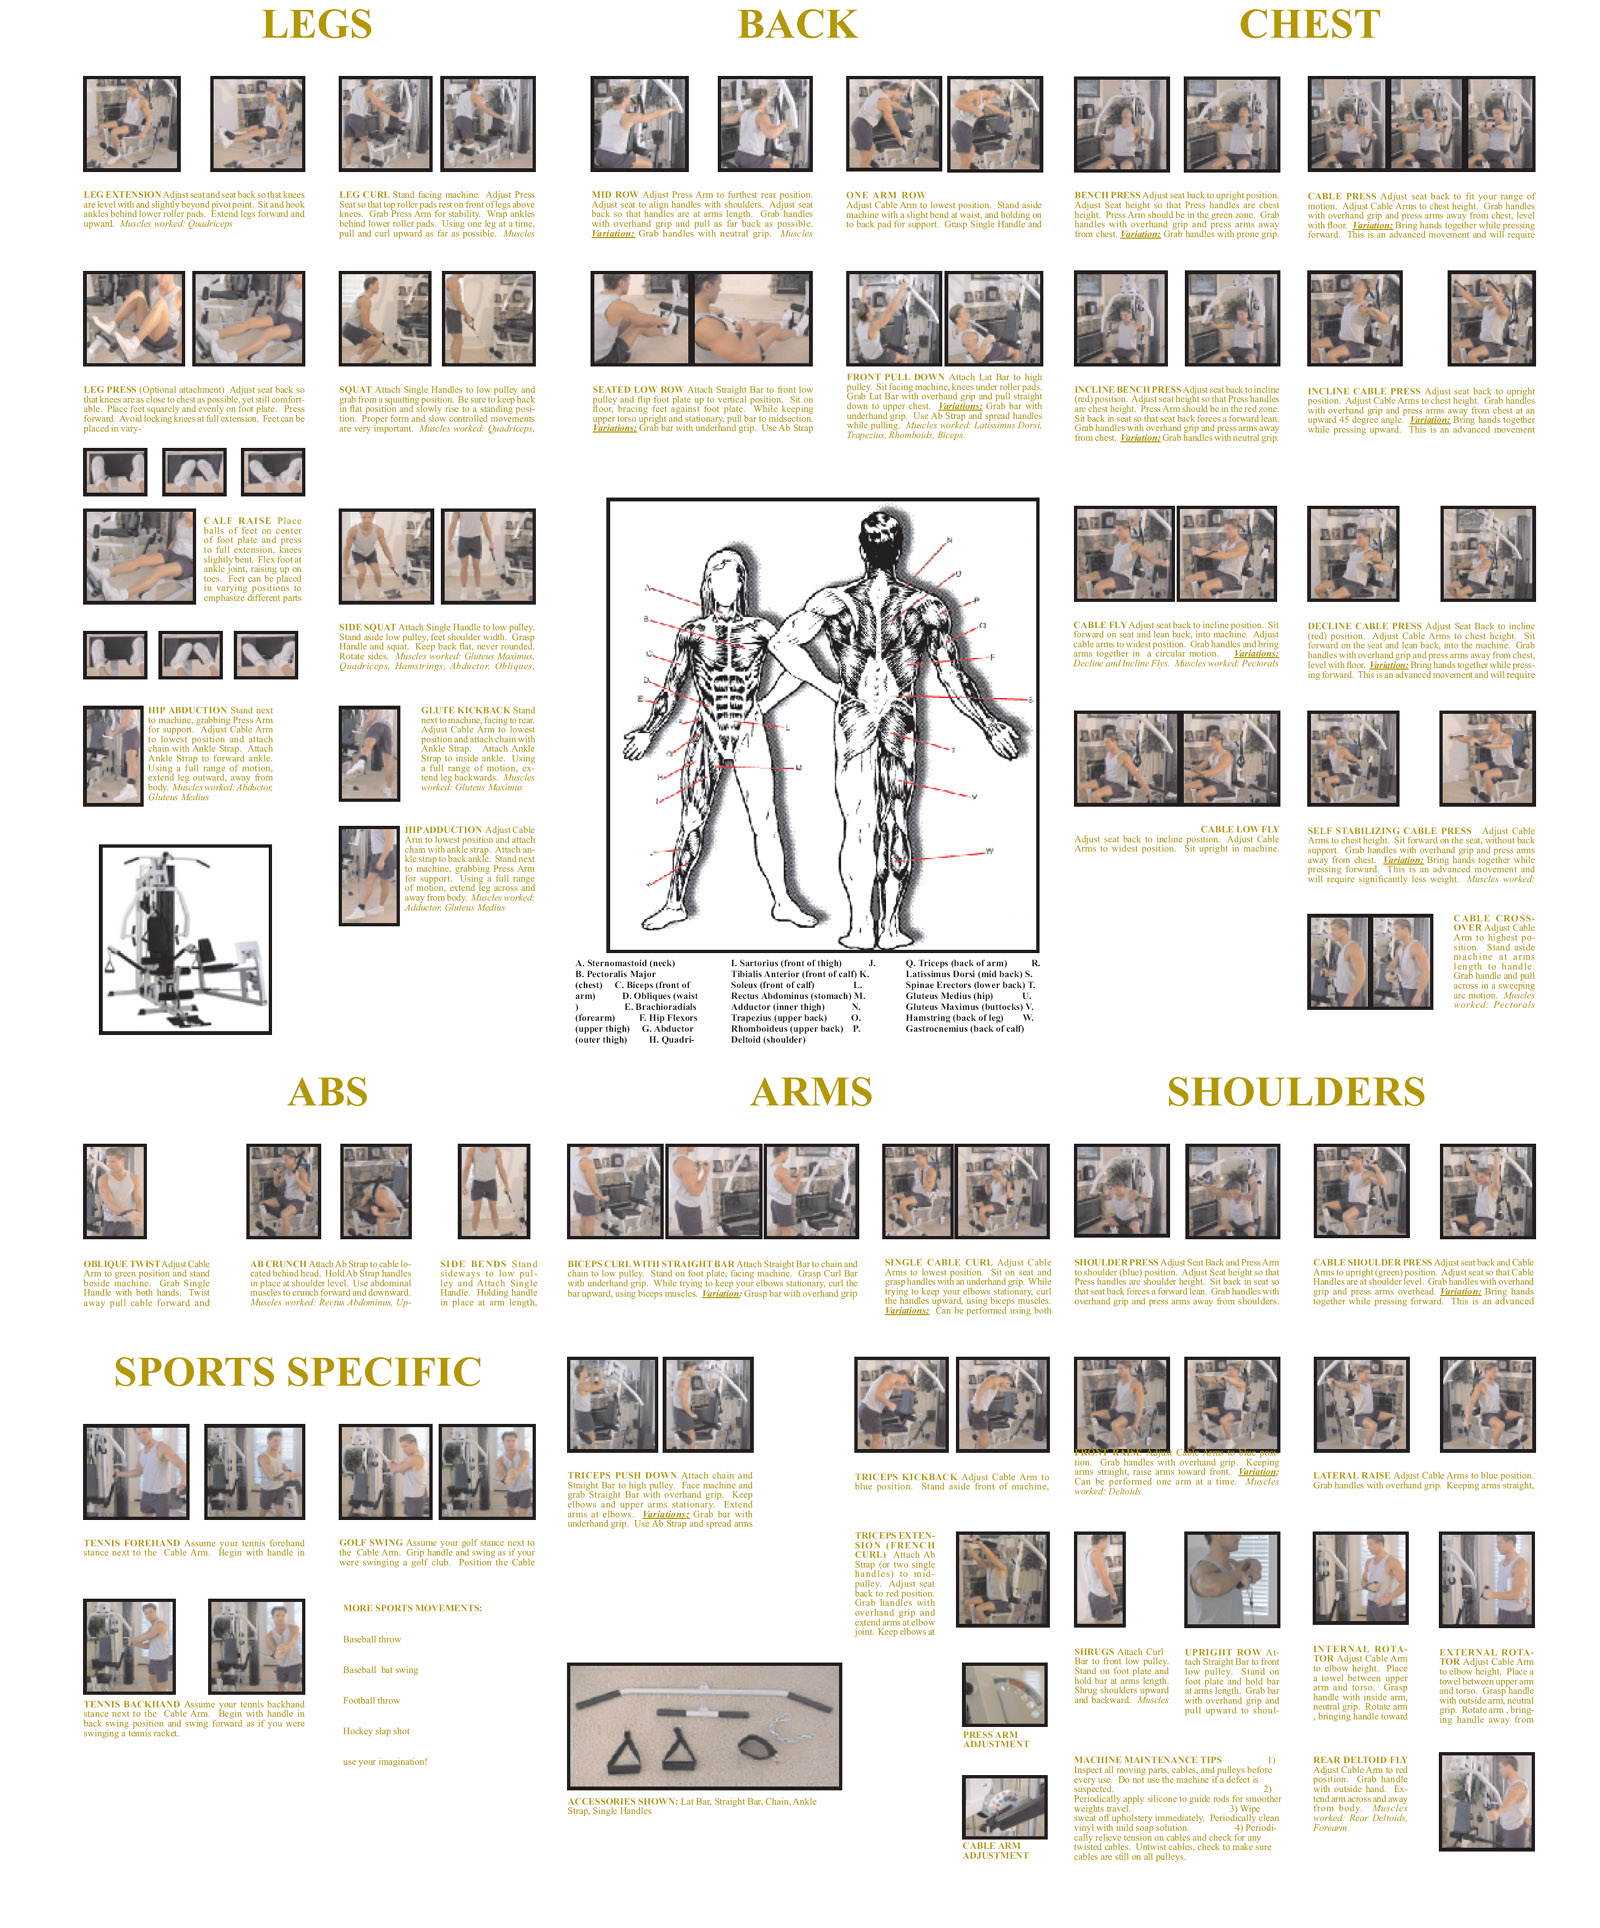 Home Gym Workout Plans 1000 House Plans Workout Plan Gym Workout Plan Workout Routine